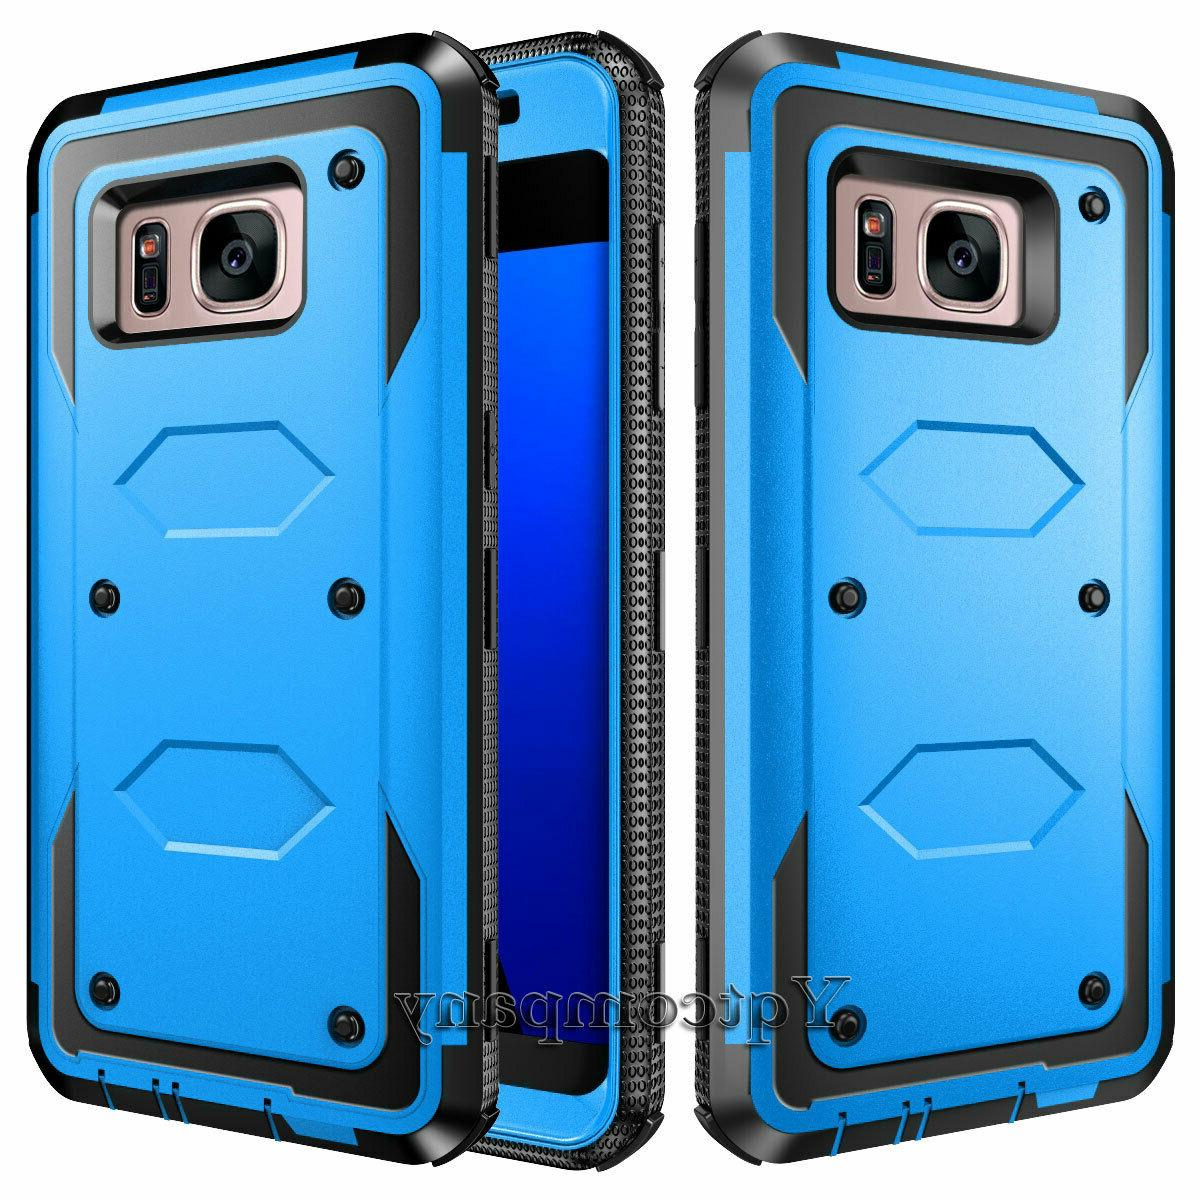 For Galaxy S6/S7 Edge/S8/S9/S20/Note Plus Phone